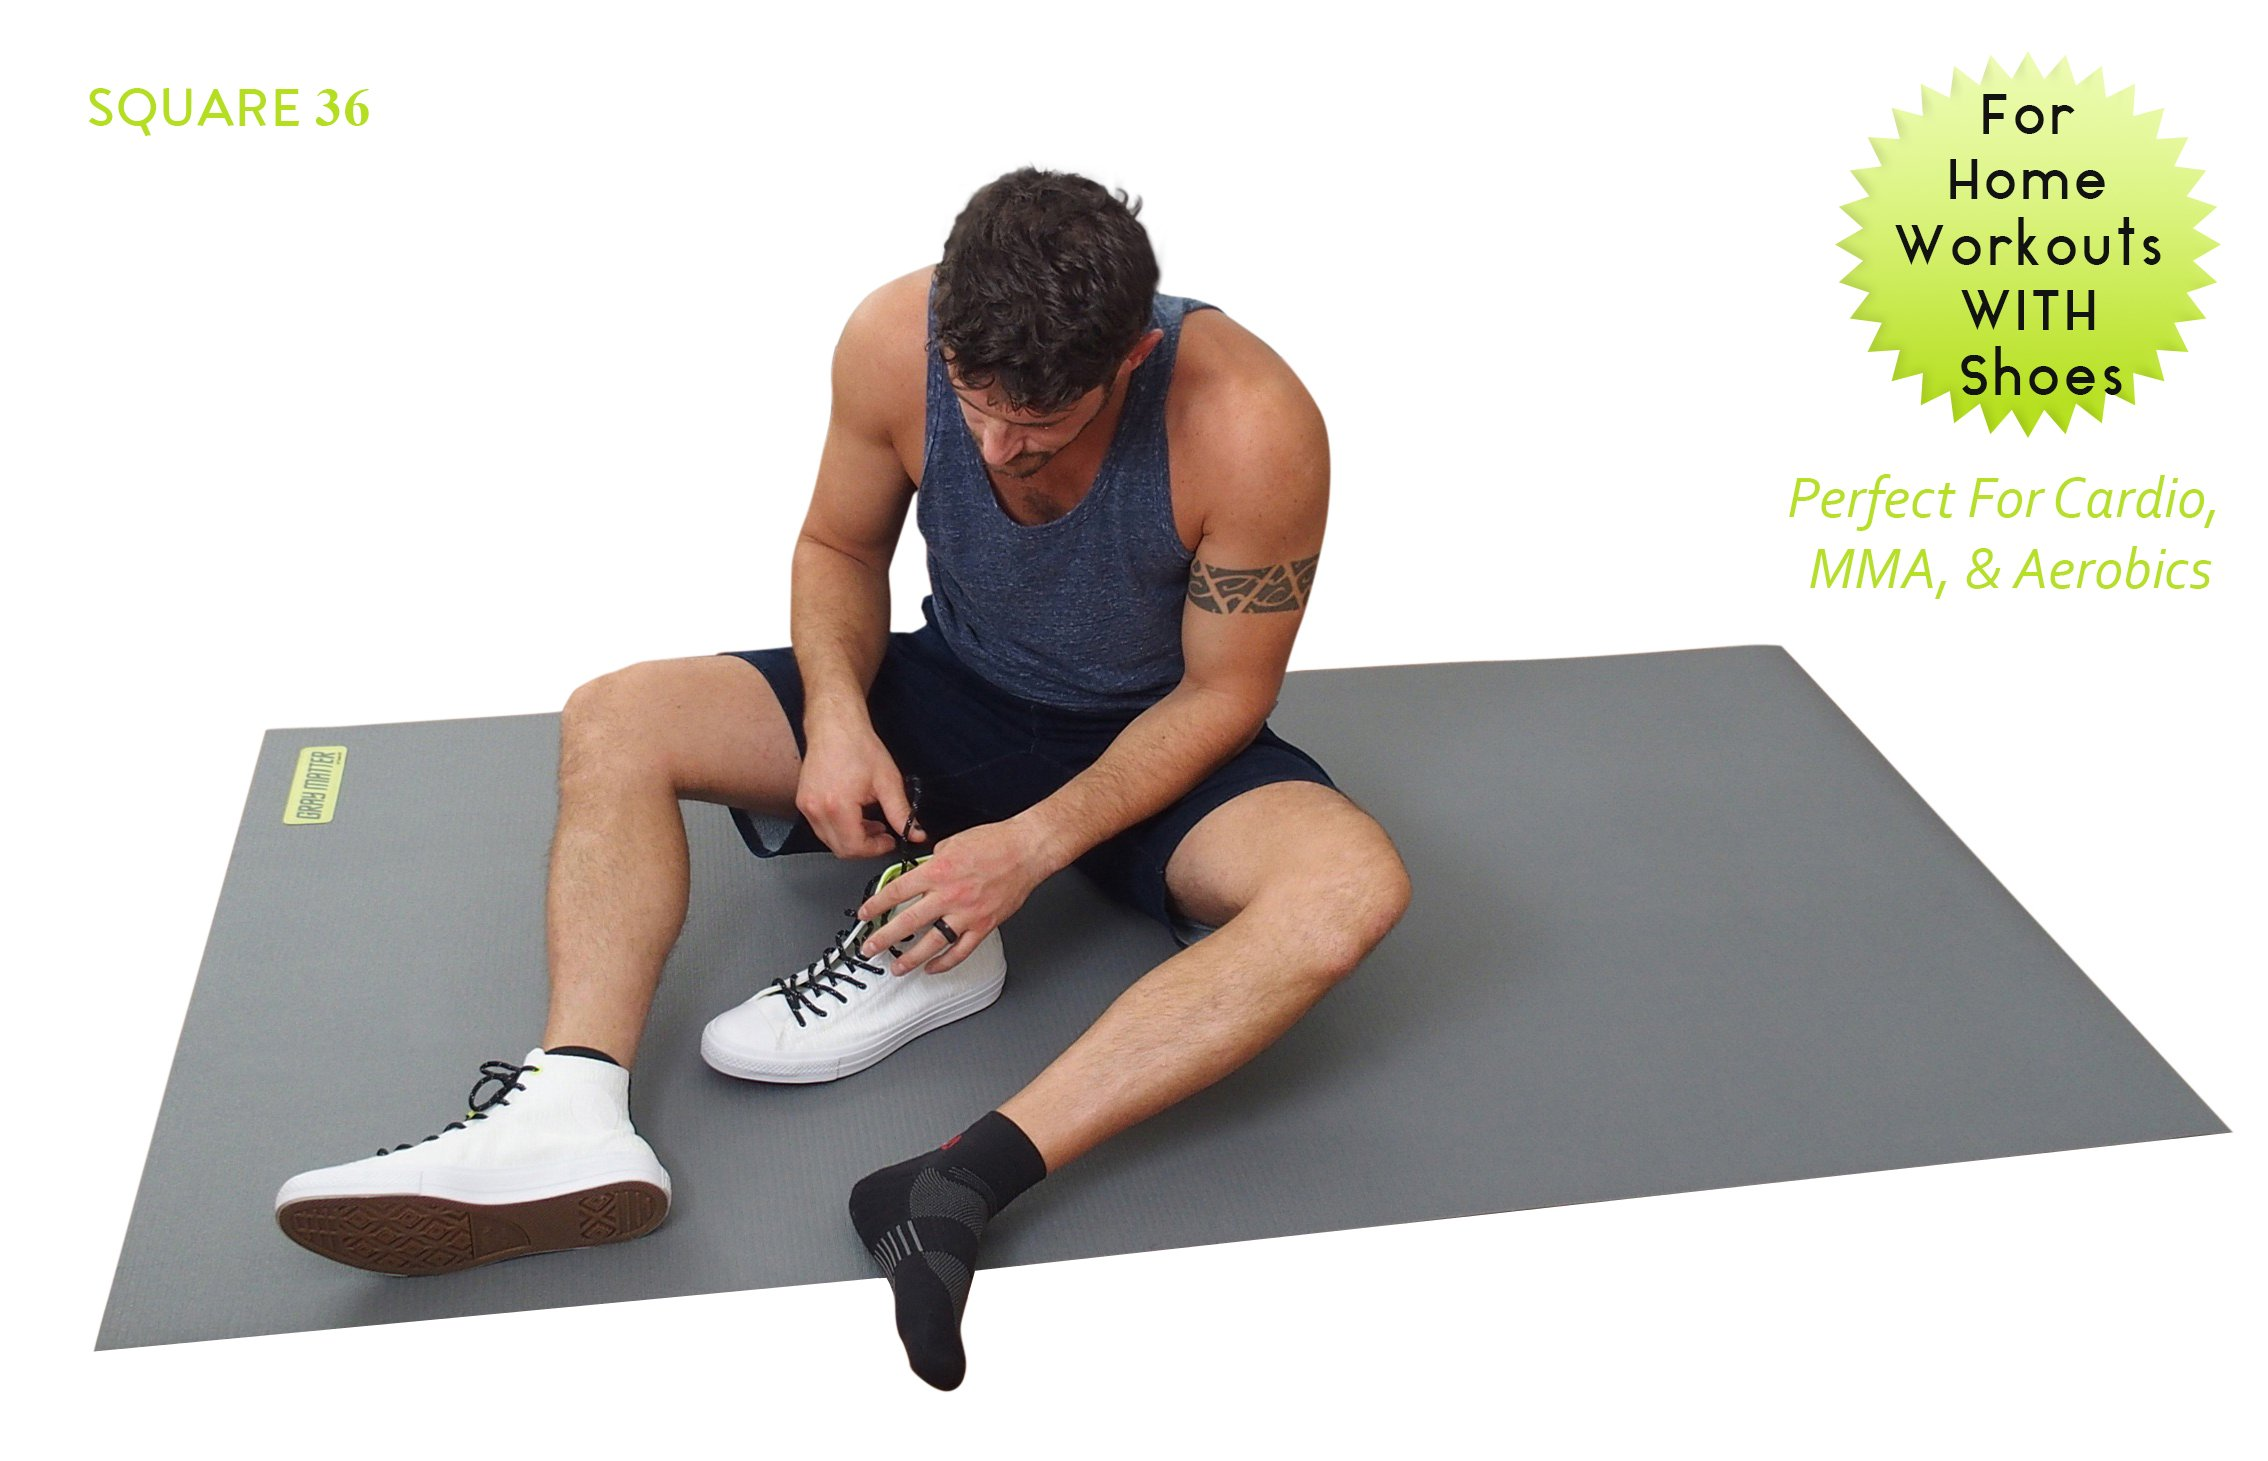 Large Exercise Mat For Cardio Workouts 72'' Long x 60'' Wide x 7mm Thick (6' x 5' x 7mm). For Home-Based Workouts With or Without SHOES. Comes With a Storage Bag & Storage Straps. by Square36 (Image #2)